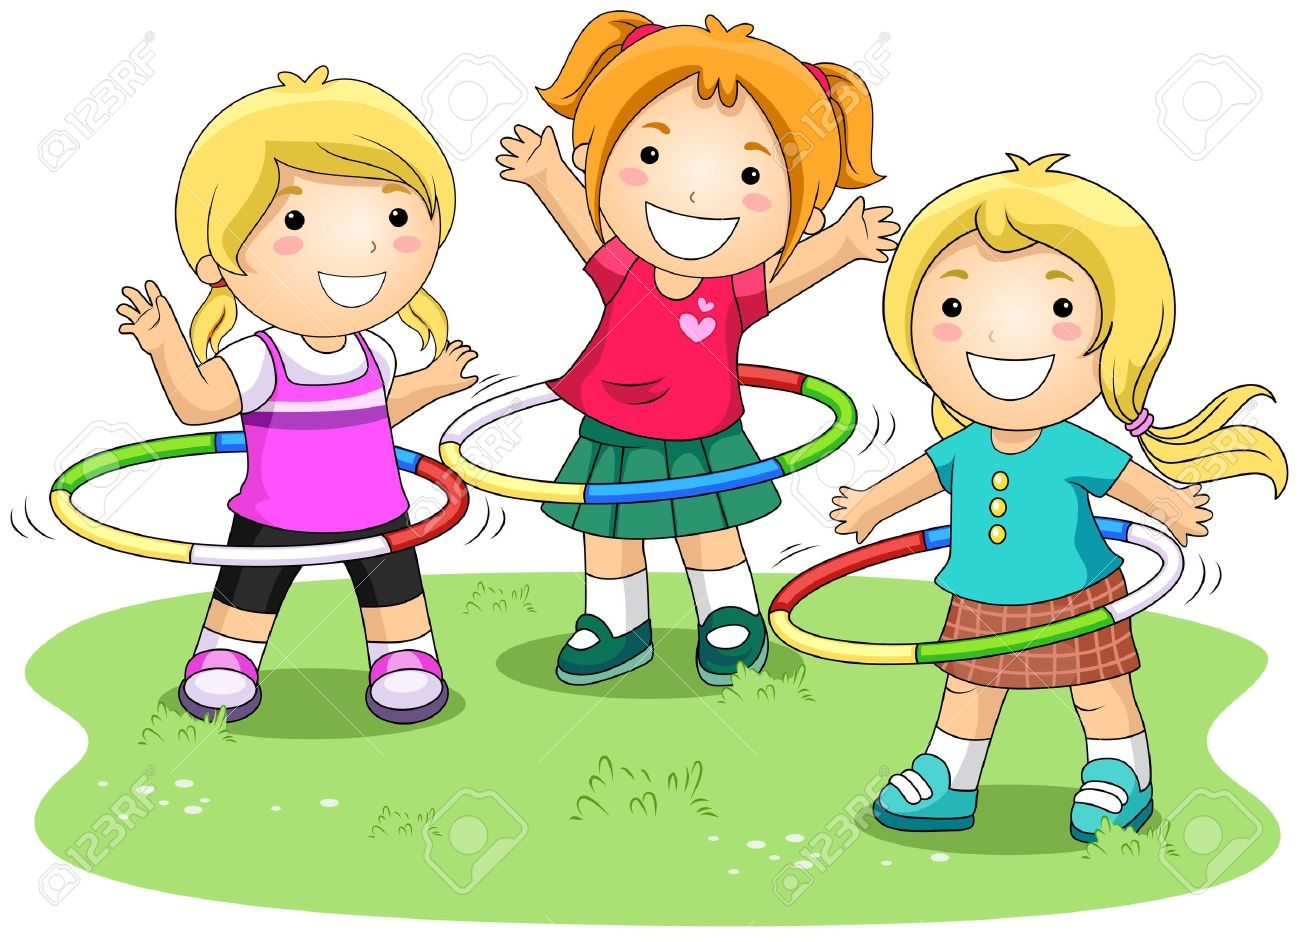 children playing toys clipart - photo #36